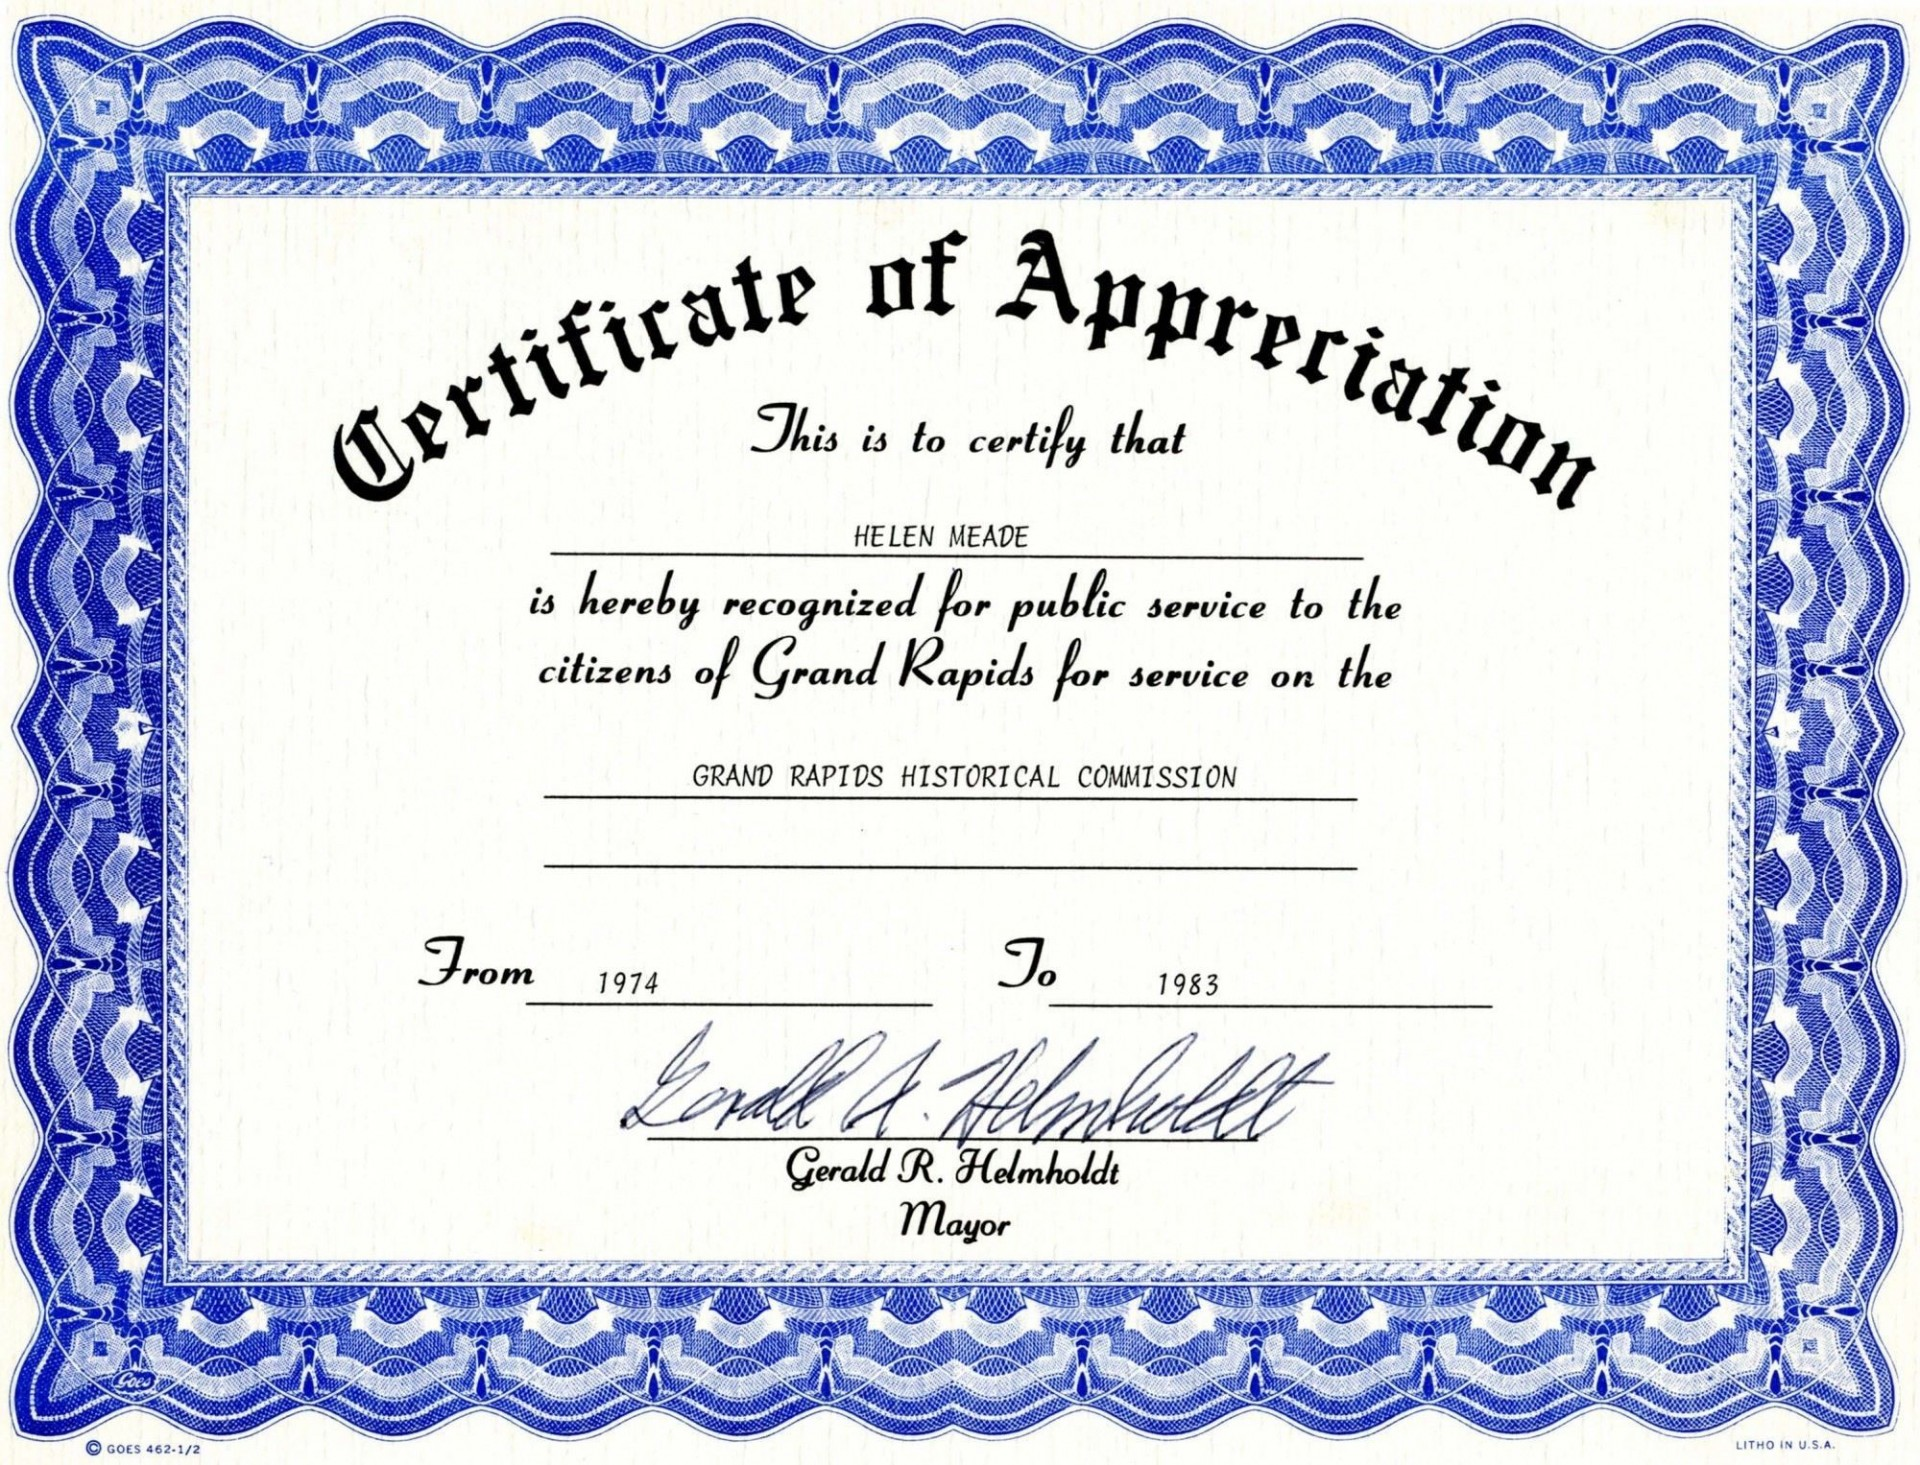 008 Simple Award Certificate Template Word Picture  Doc Sample Wording Scholarship1920